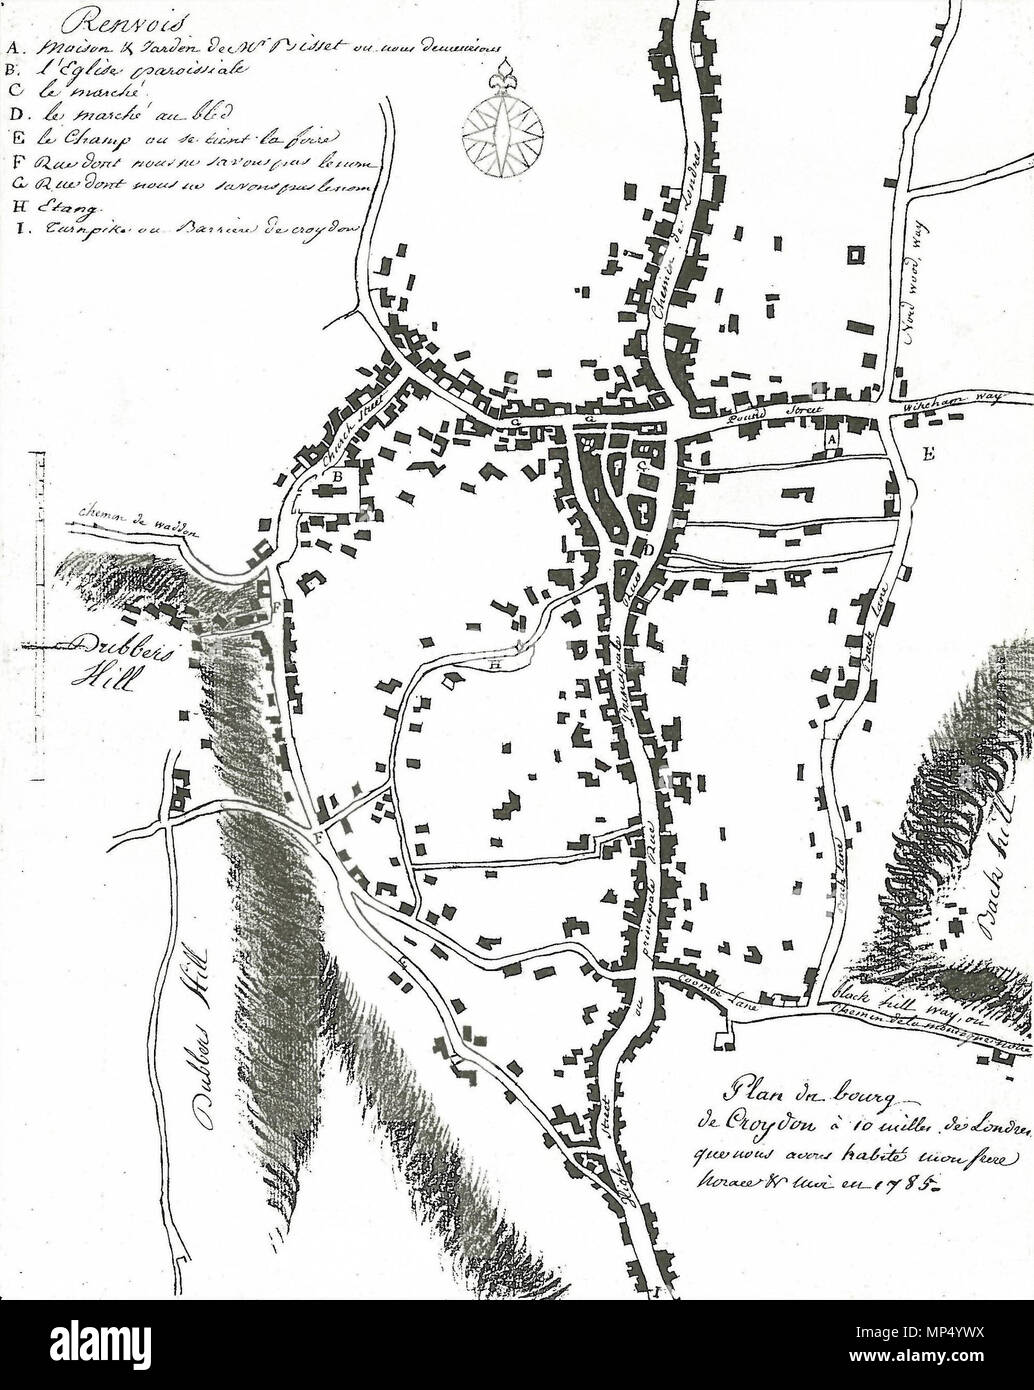 . English: Plan of the town of Croydon drawn by Jean-Baptiste Say (1767–1832) in 1785. Marked locations include: A - house of Alexander Bisset where Say and his brother stayed; B - parish church; C - market; D - cornmarket; E - Fairfield; F & G unnamed roads; H - pond; I - turnpike gate. Location of original: Croydon Archives AR 47/1. 1785. Jean-Baptiste Say (1767–1832) 1098 Say map Stock Photo